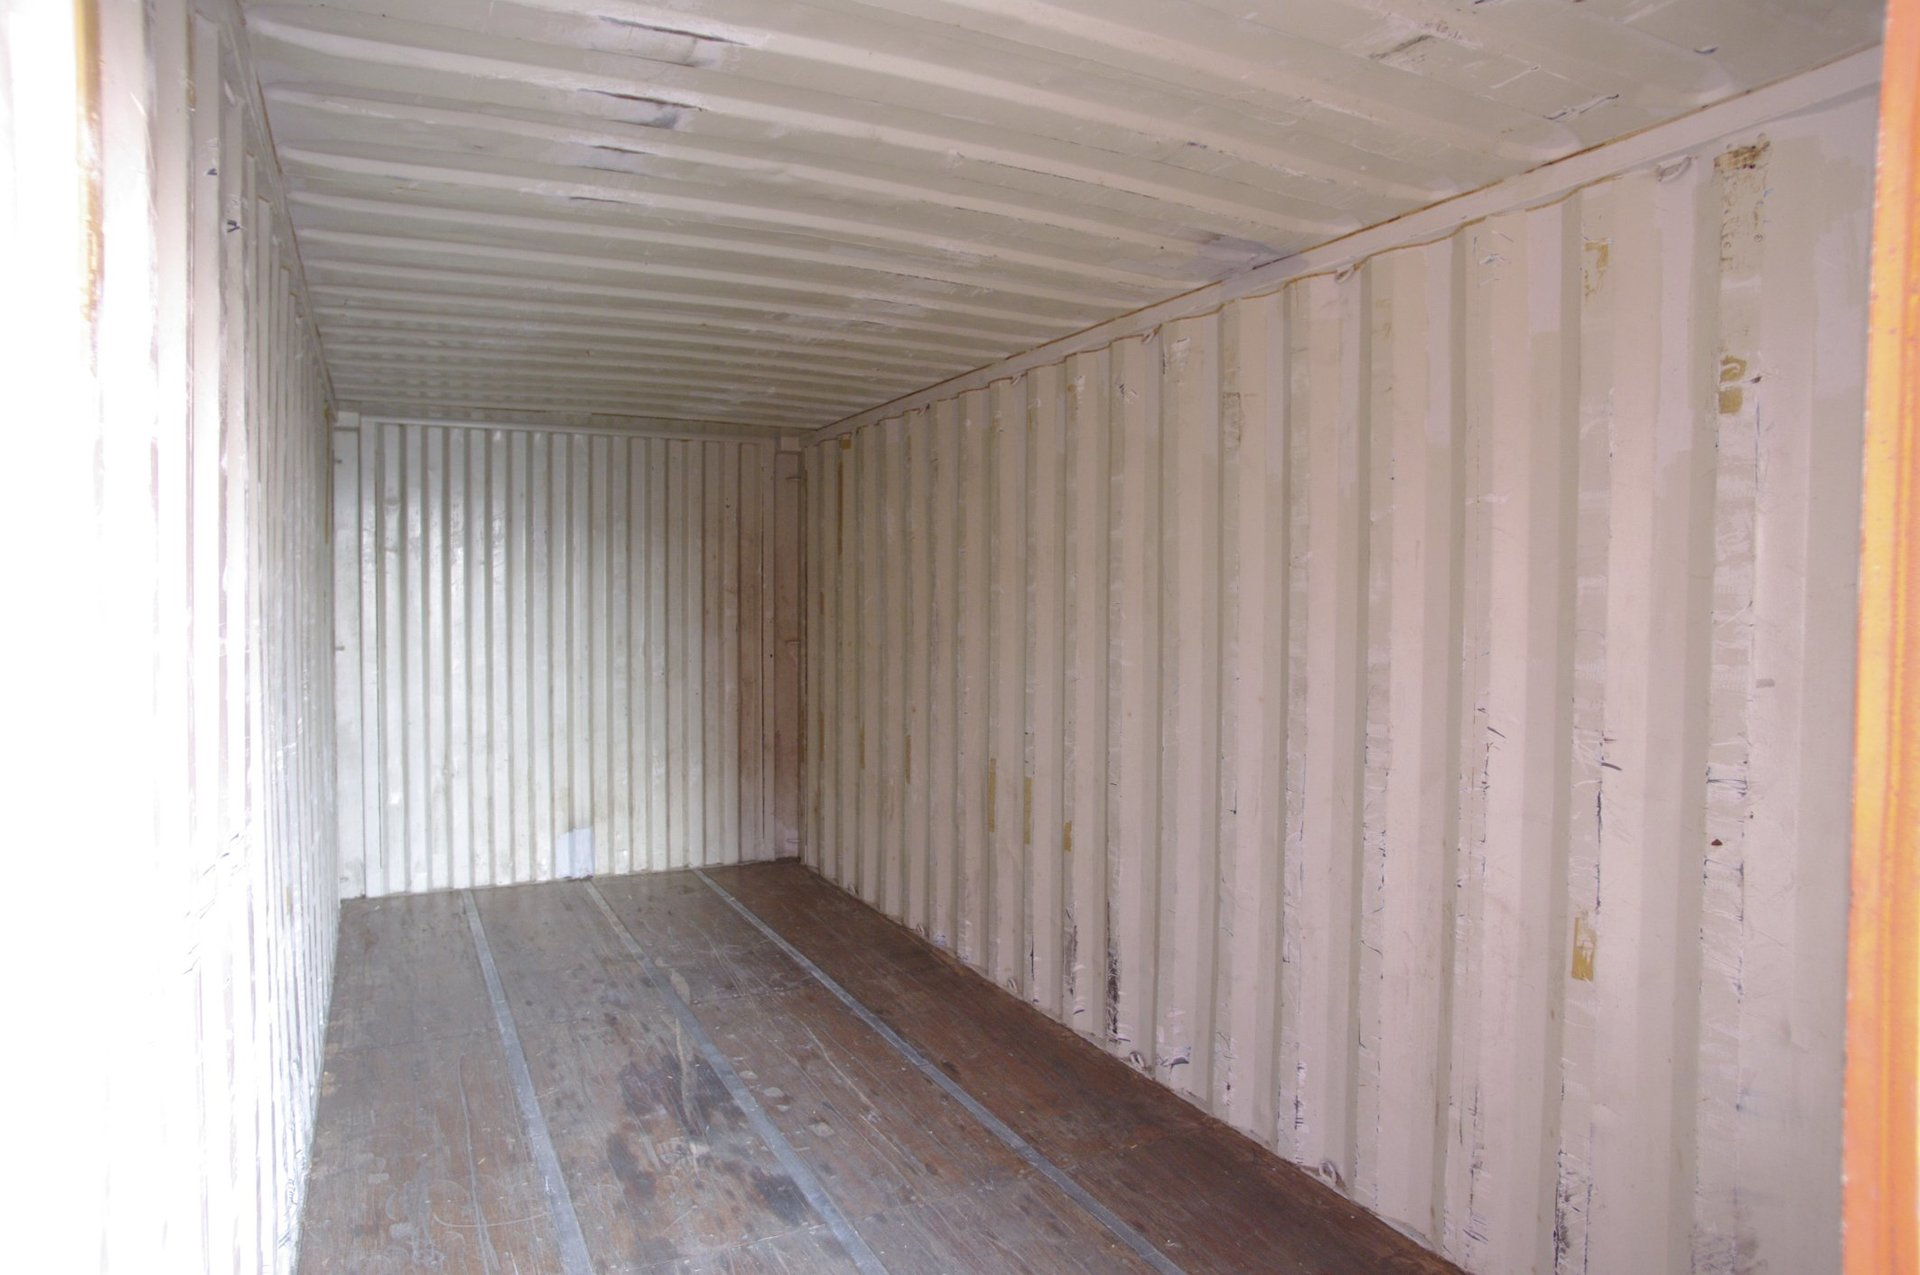 inside the storage container